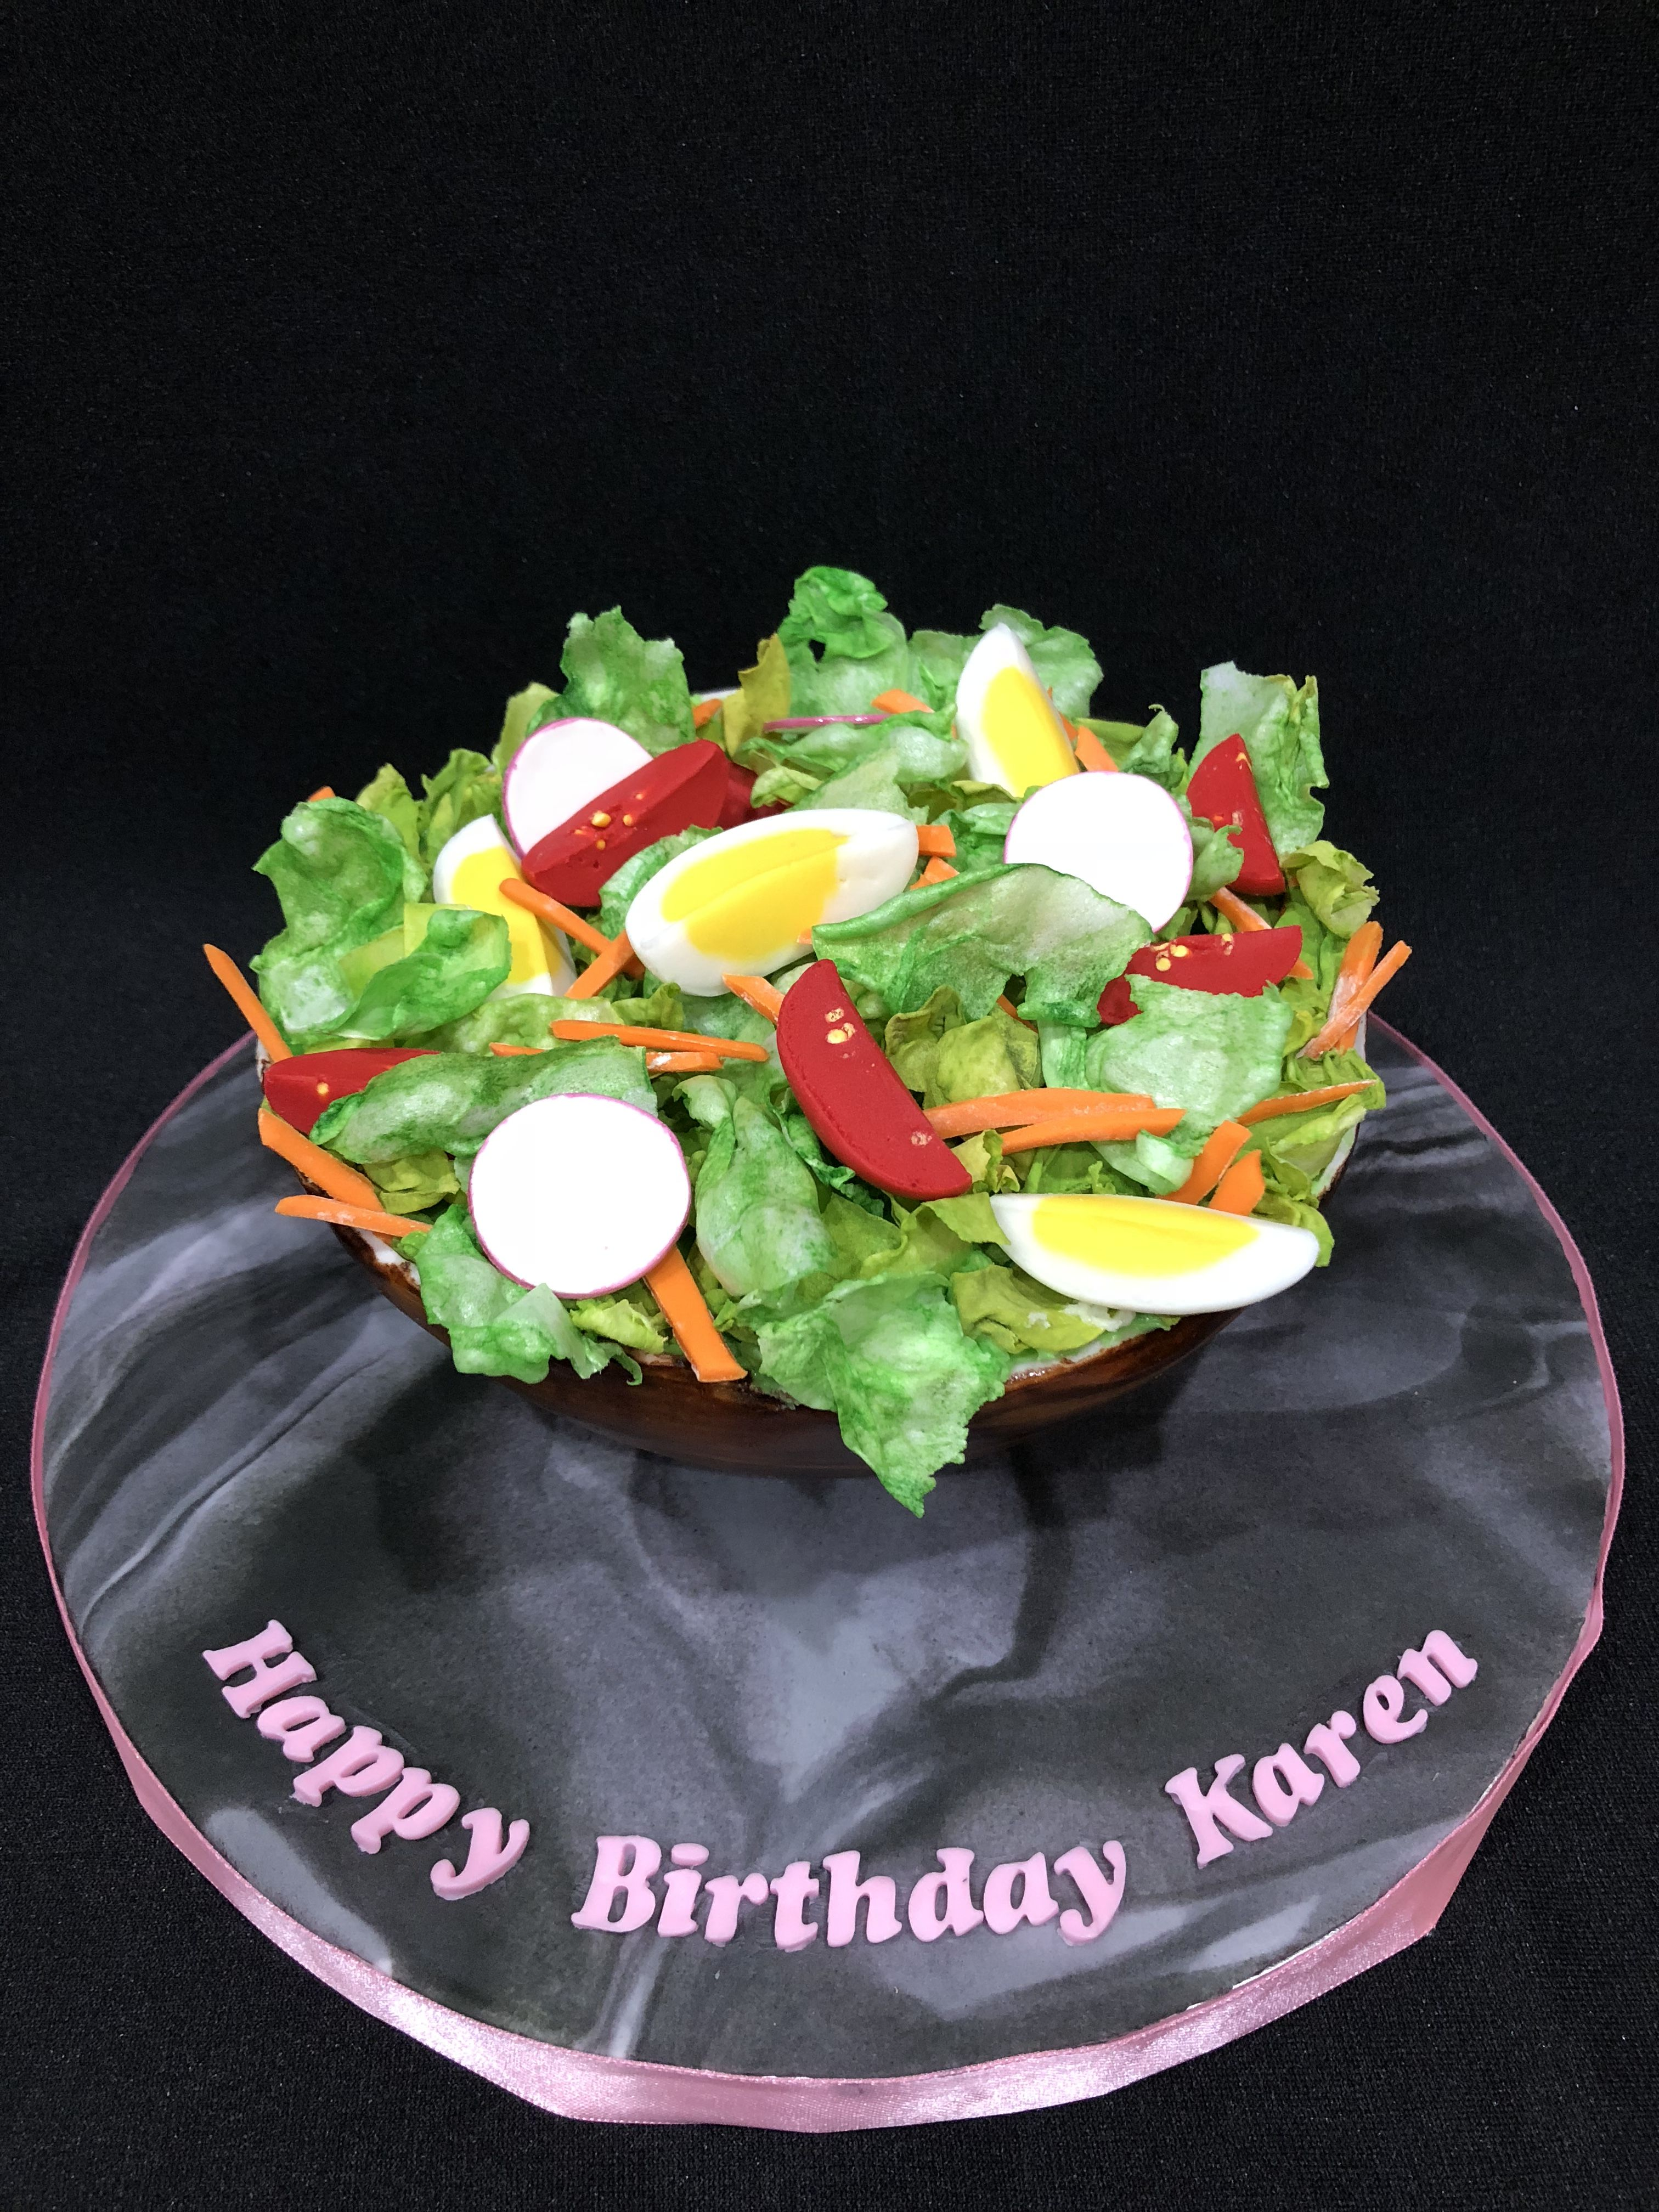 Salad Cake Birthday Cake That Looks Like A Salad Cake Designs In